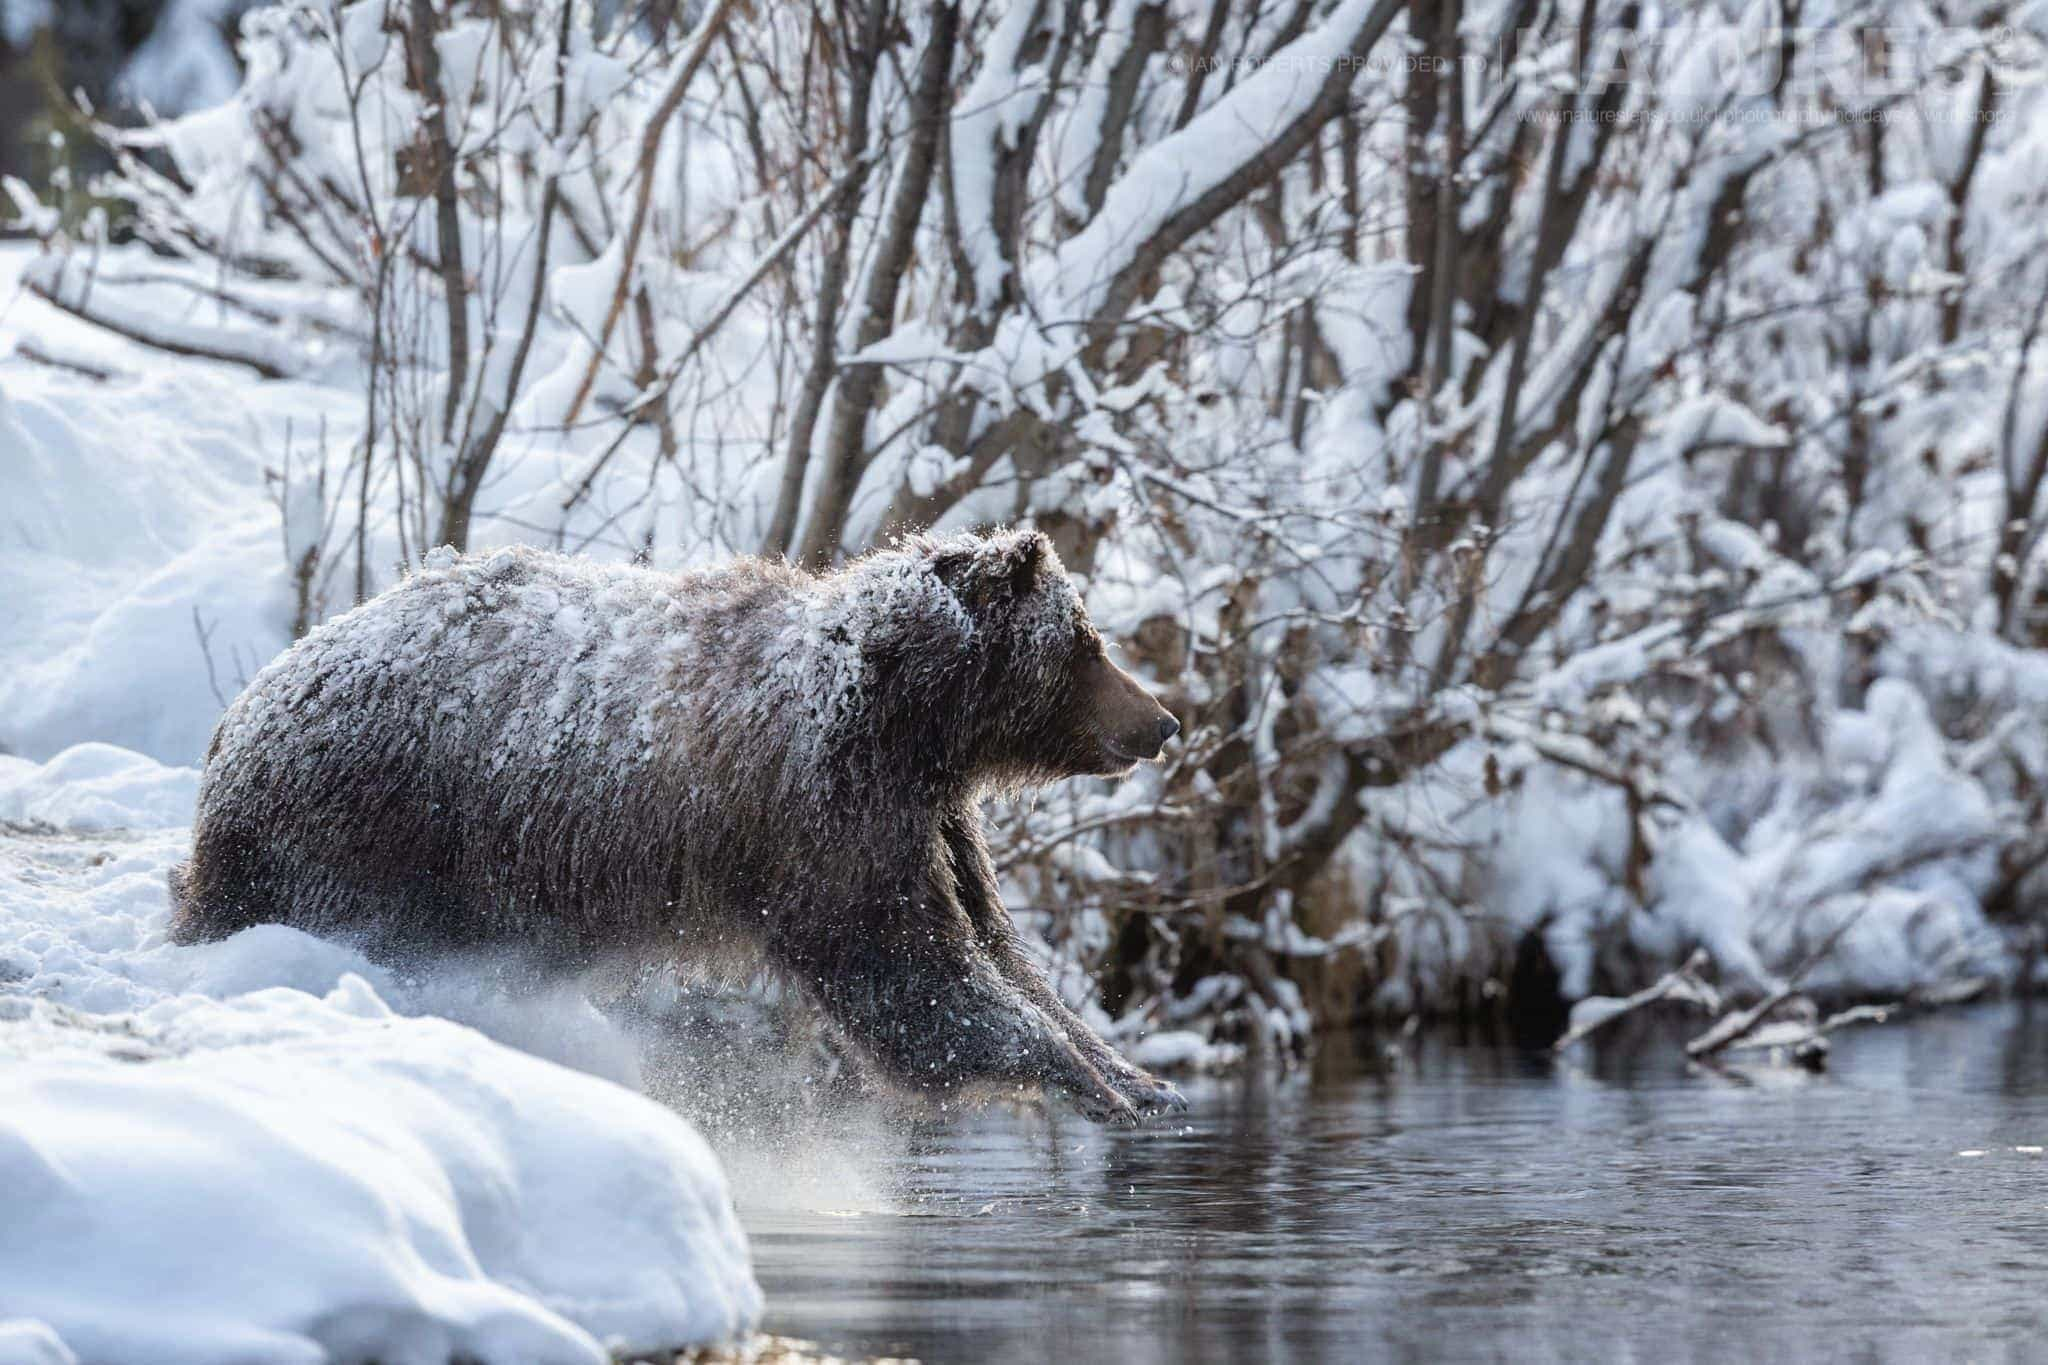 A Grizzly Bear Leaps From The Snowy Banks Into The River   Captured During The Natureslens Ice Grizzlies Of The Yukon Photography Holiday